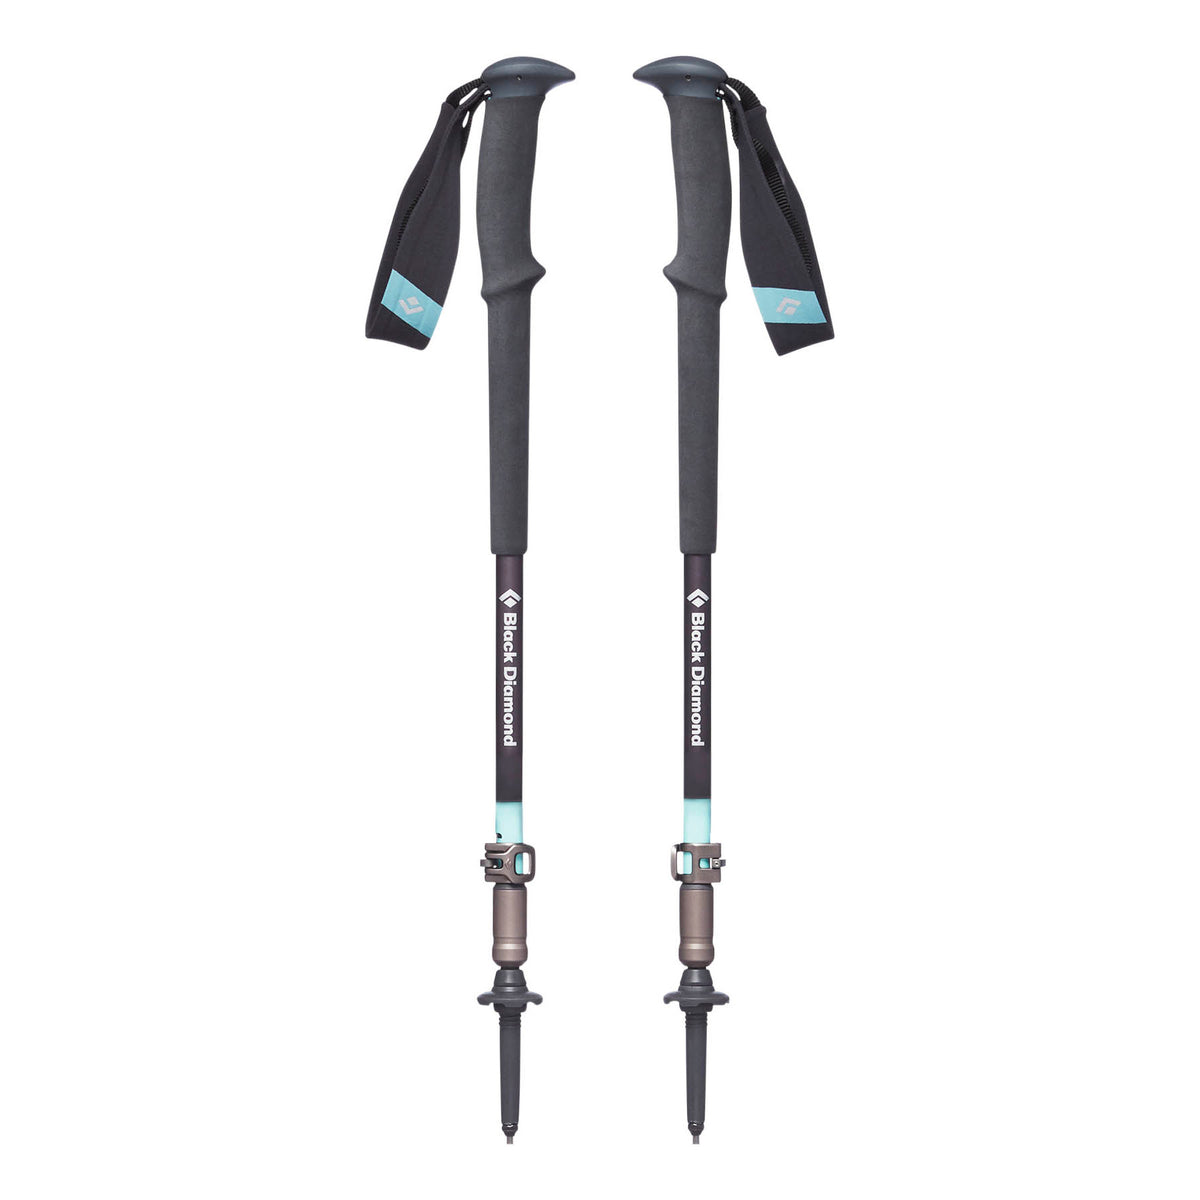 Pair of Black Diamond Trail Pro Womens poles shown collapsed down, in Teal & Grey colours